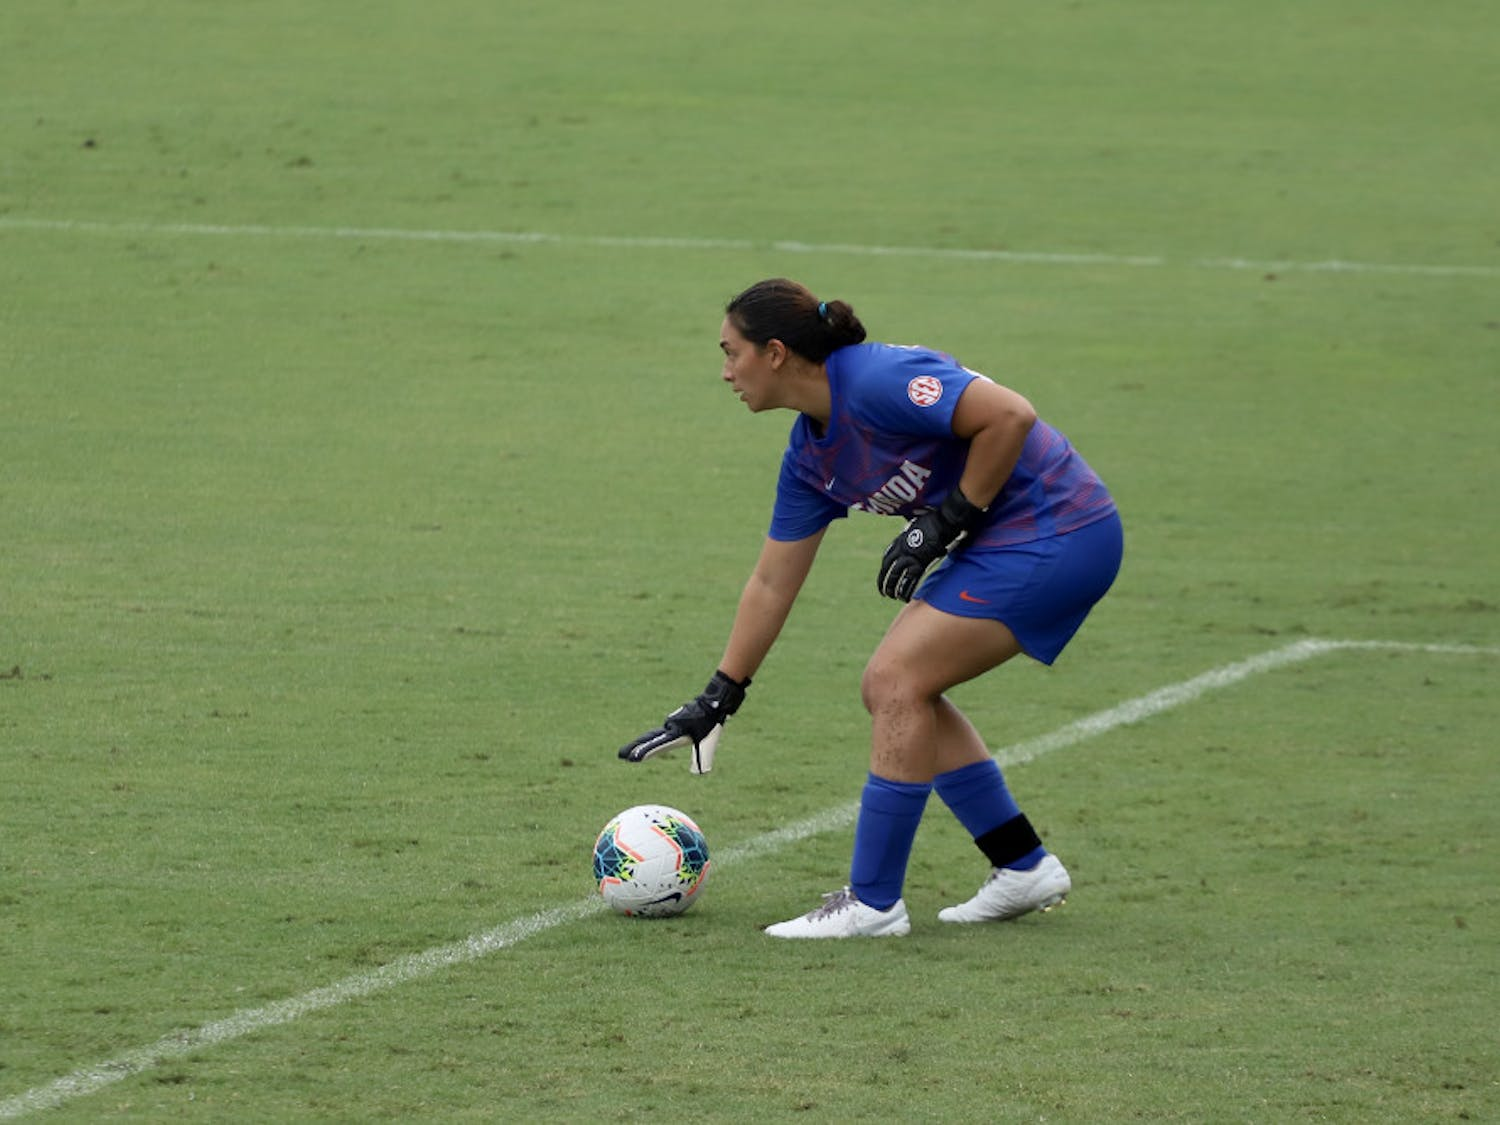 UF goalkeeper Susi Espinoza puts down a goal kick in Florida's win against Georgia. She had four saves over the course of the game.